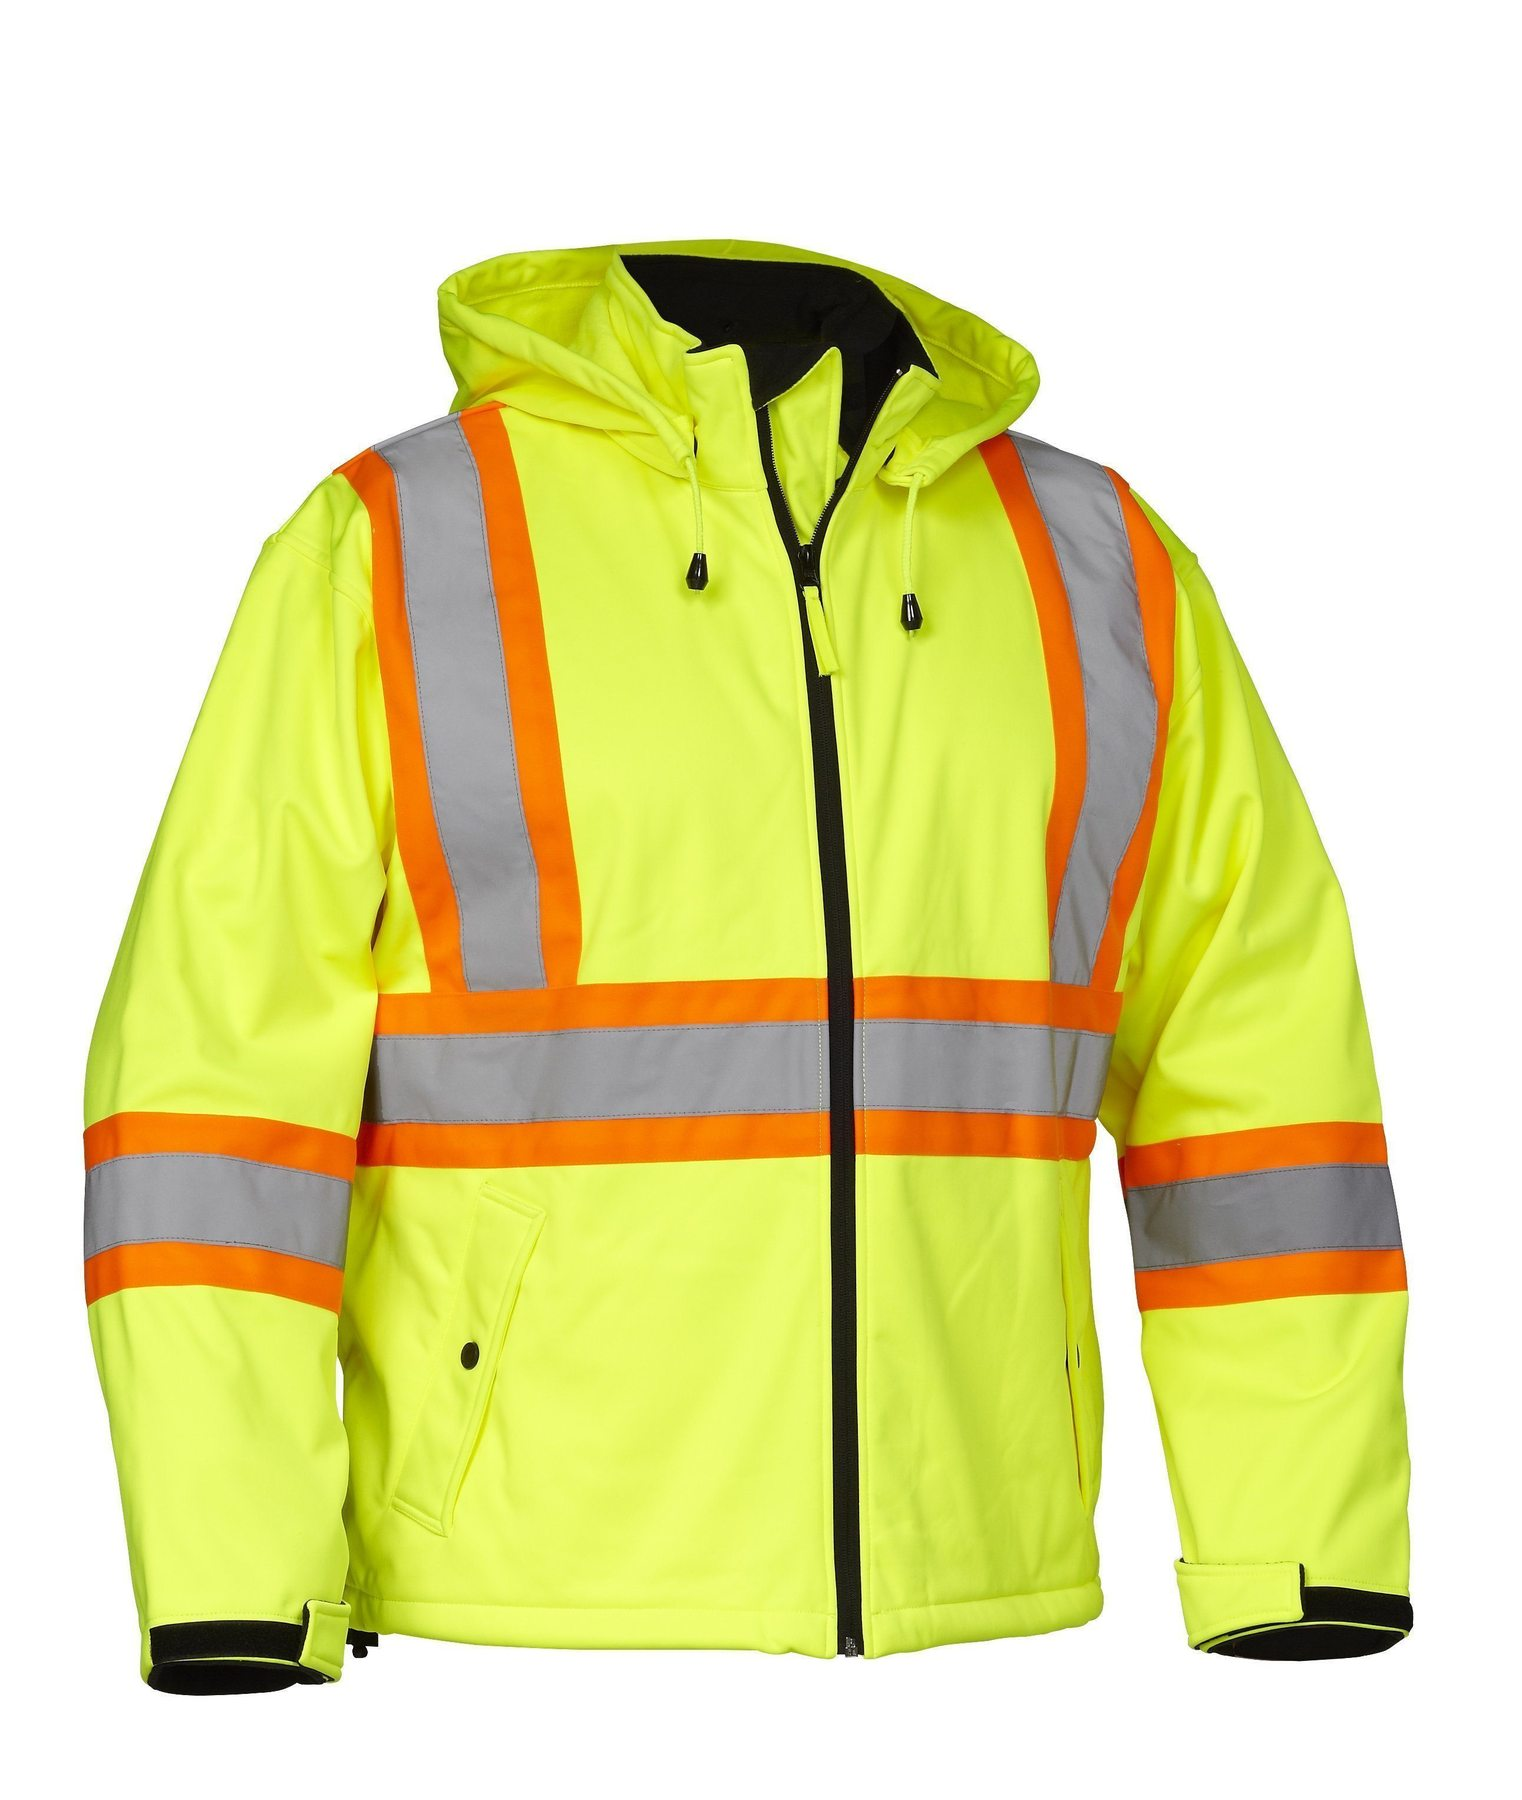 Forcefield Hi-Vis Safety Softshell Rain Jacket 023-EN147LY